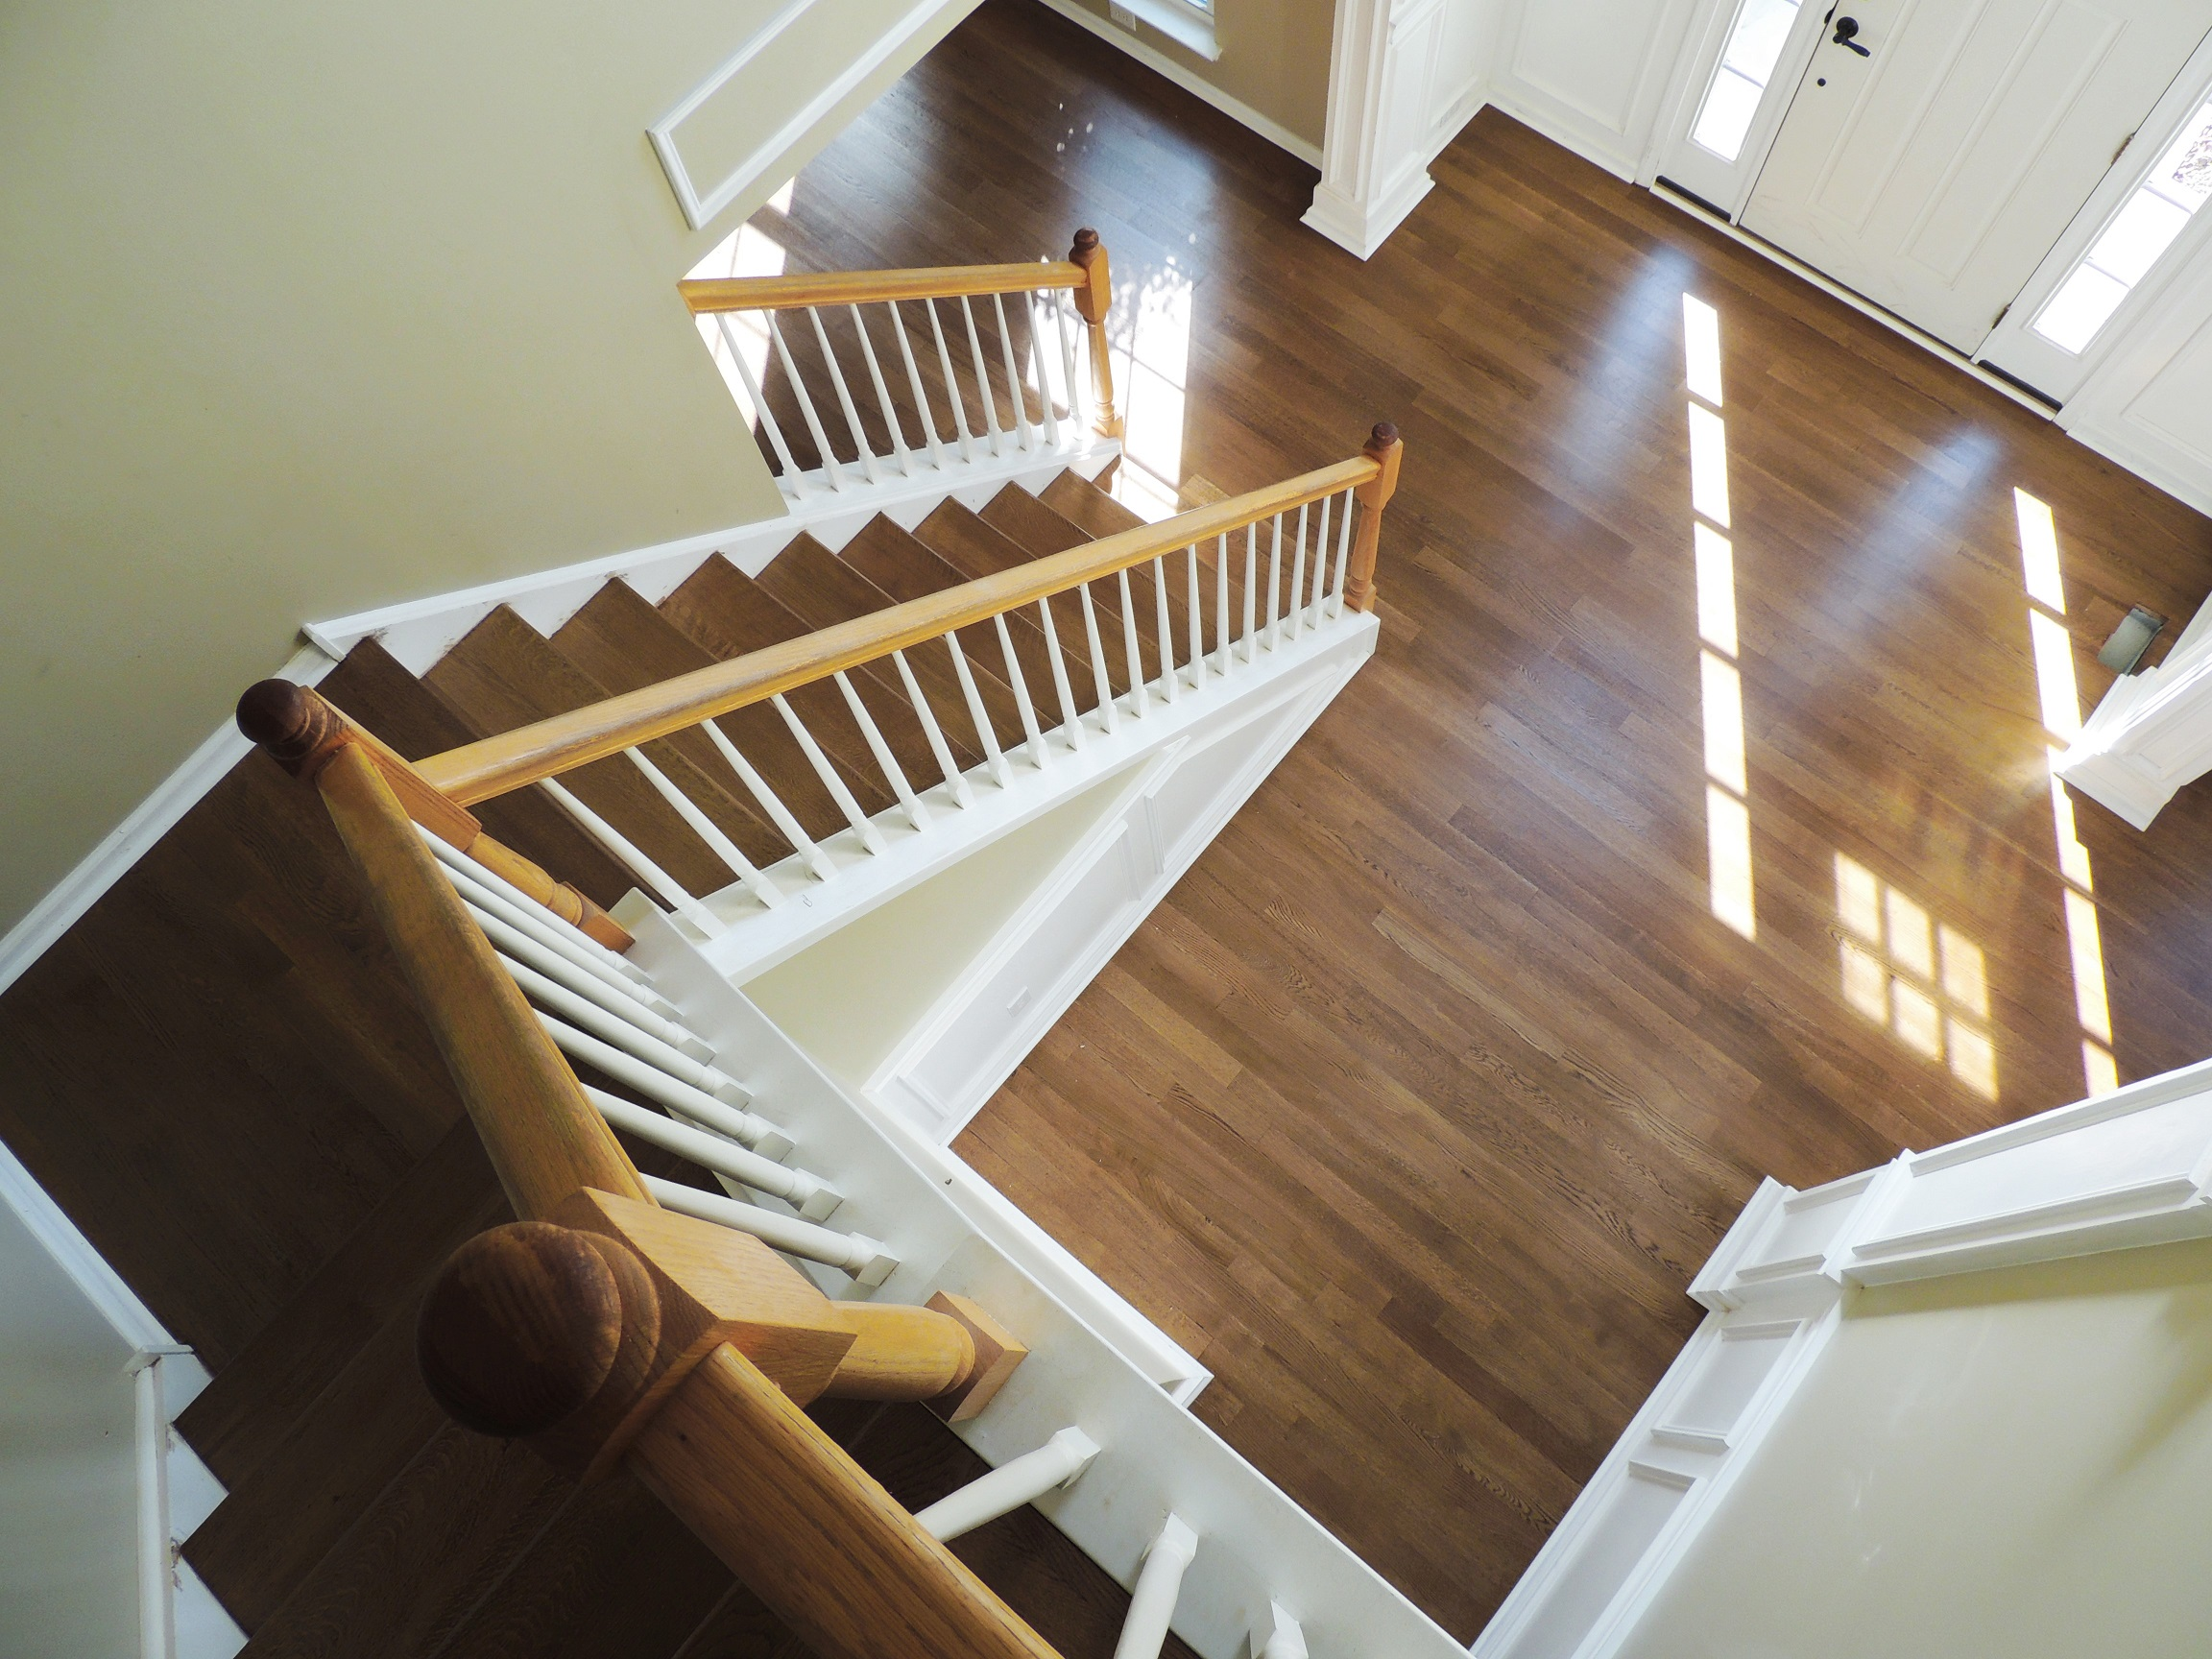 We couldn't be happier with how our floors and stairs turned out! I highly recommend Spire for any flooring work. -